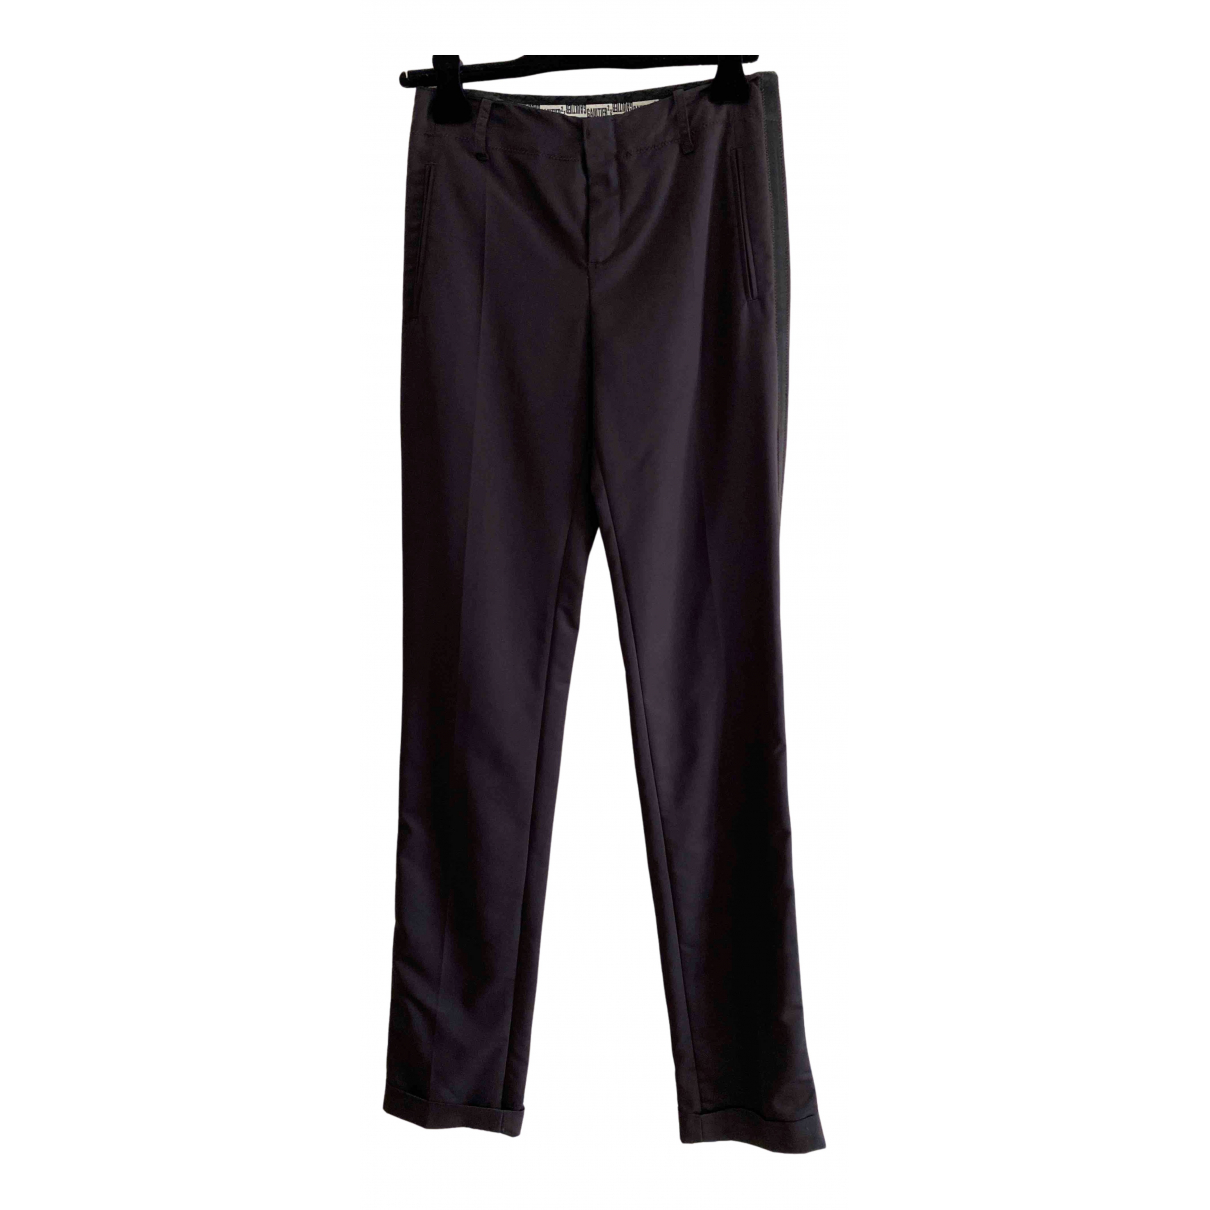 Jean Paul Gaultier N Purple Wool Trousers for Women 40 IT